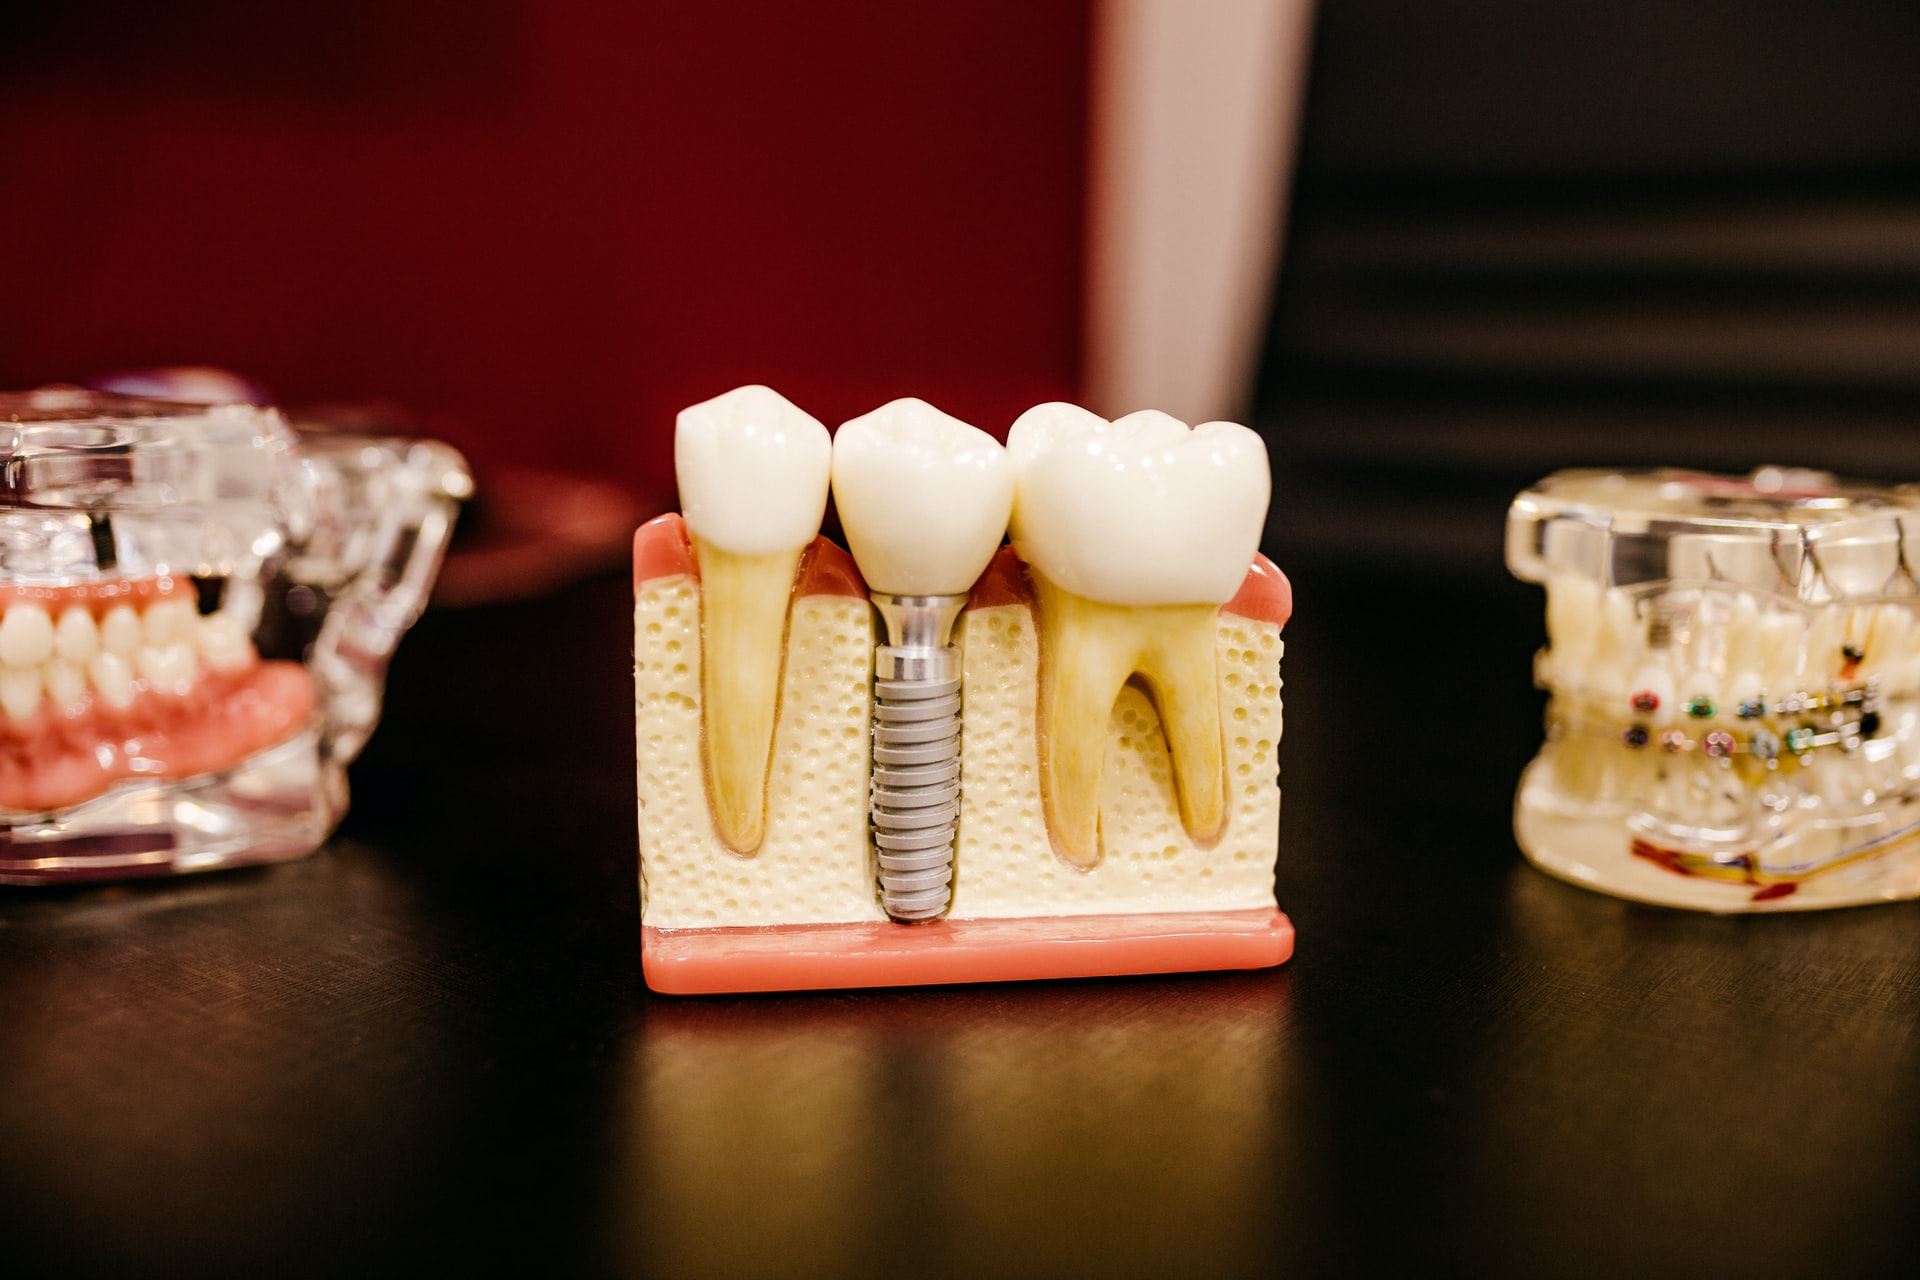 To the right is a dentist's model of teeth, in the middle is a model of how dental implants work, to the right is a model of teeth with braces